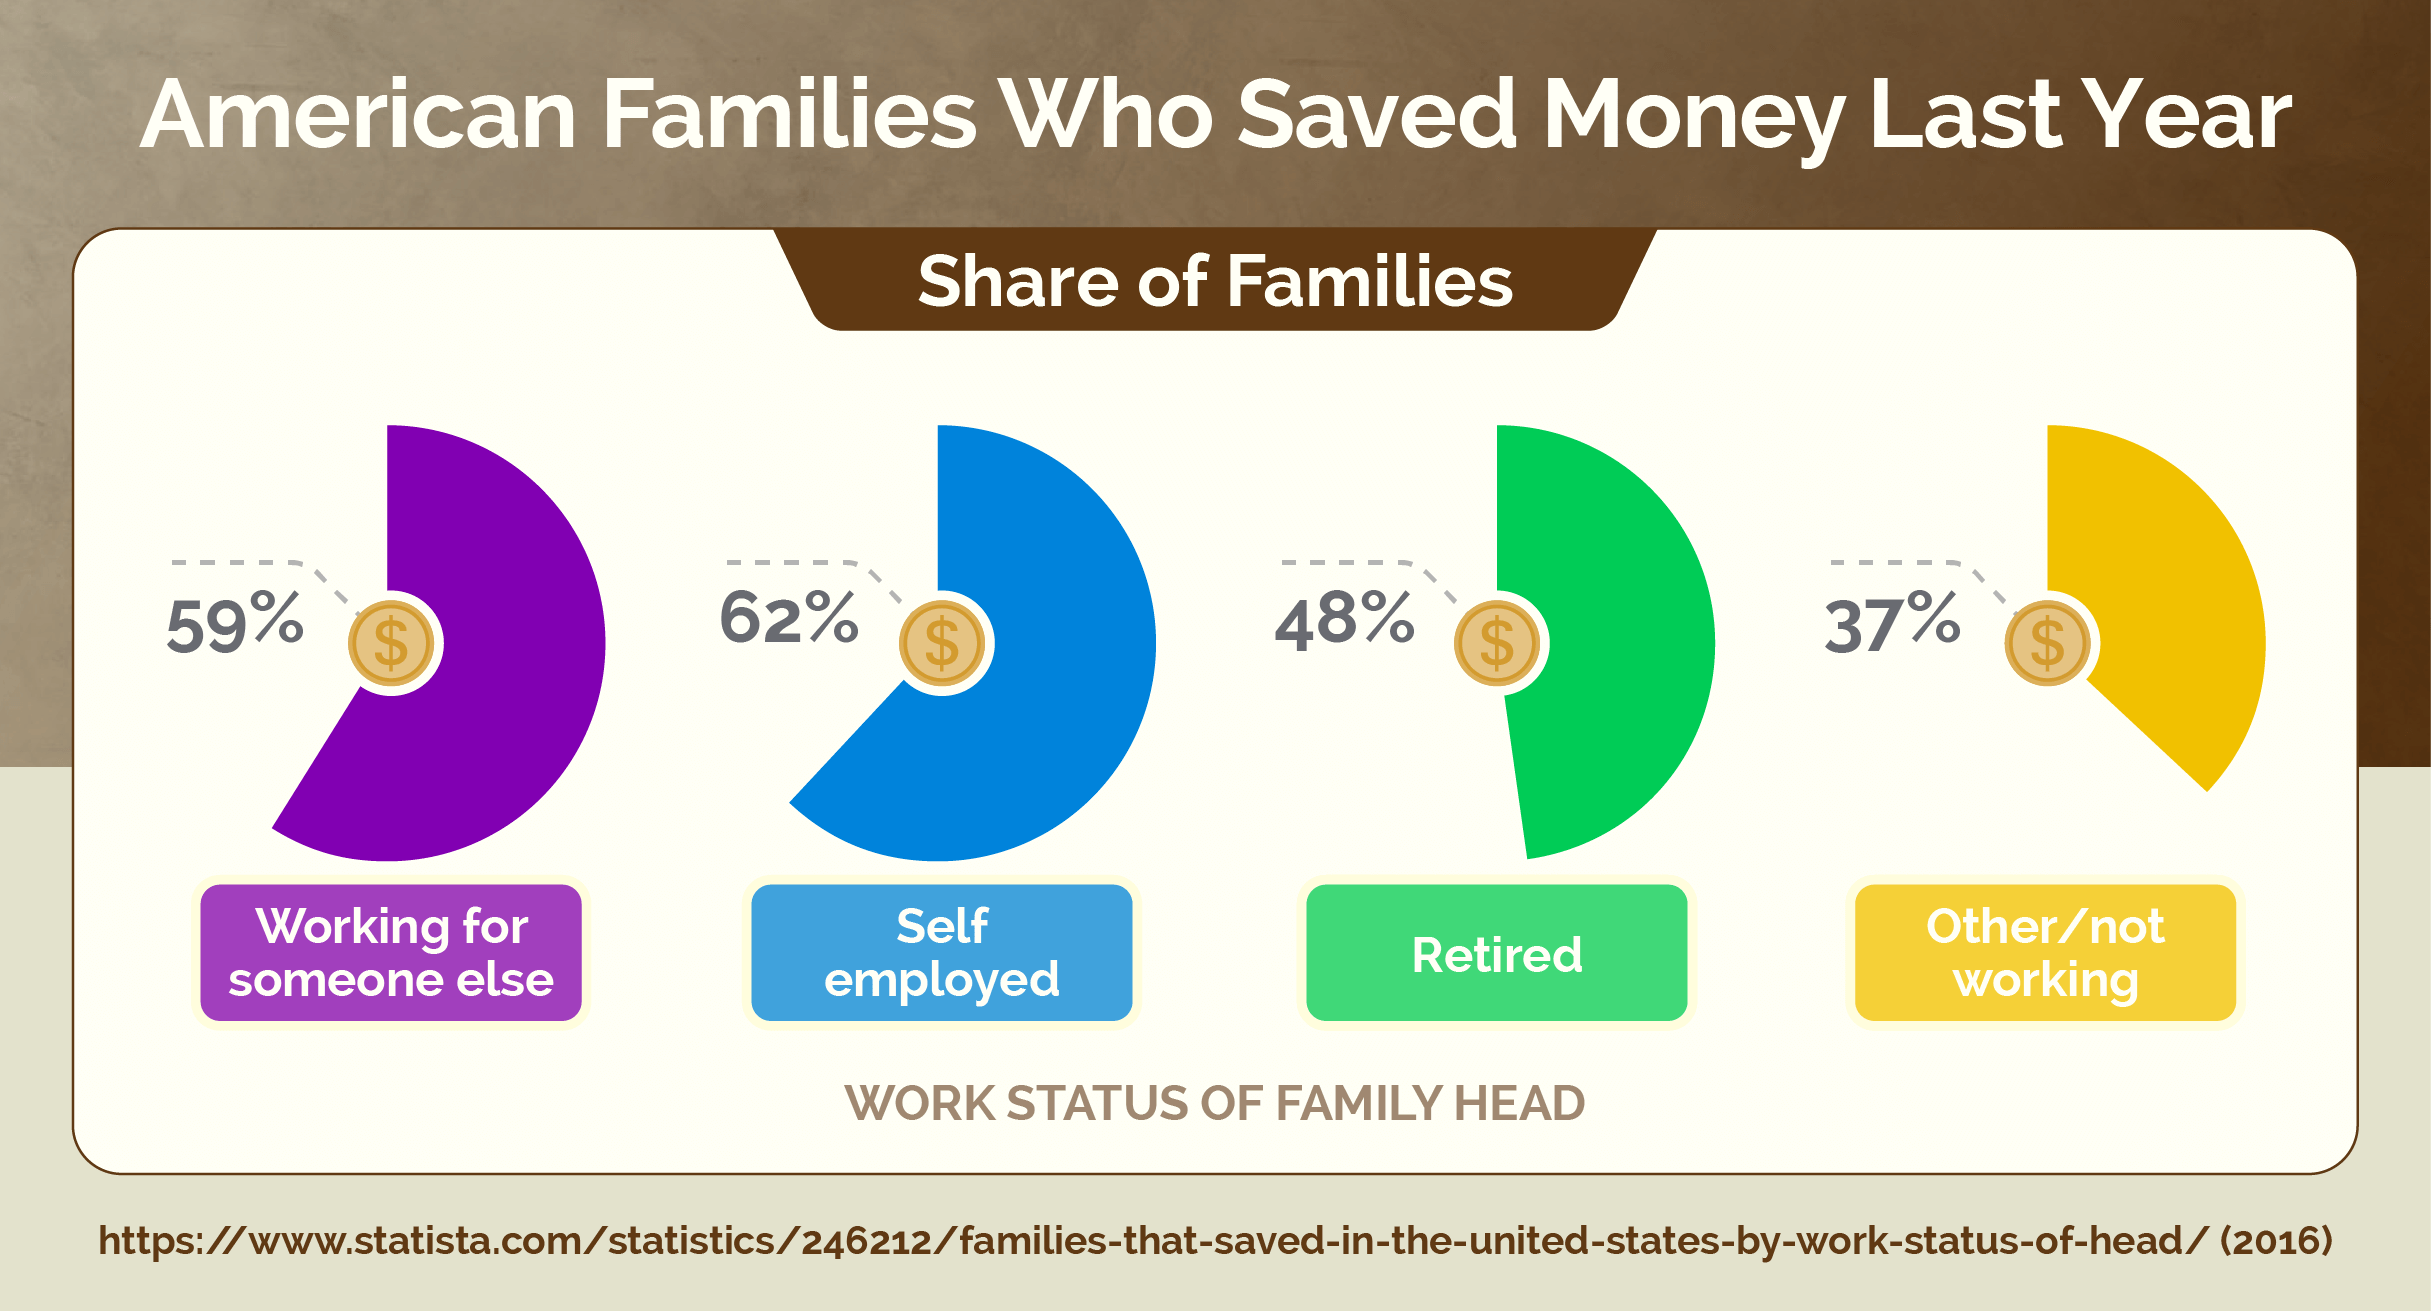 American Families Who Saved Money Last Year